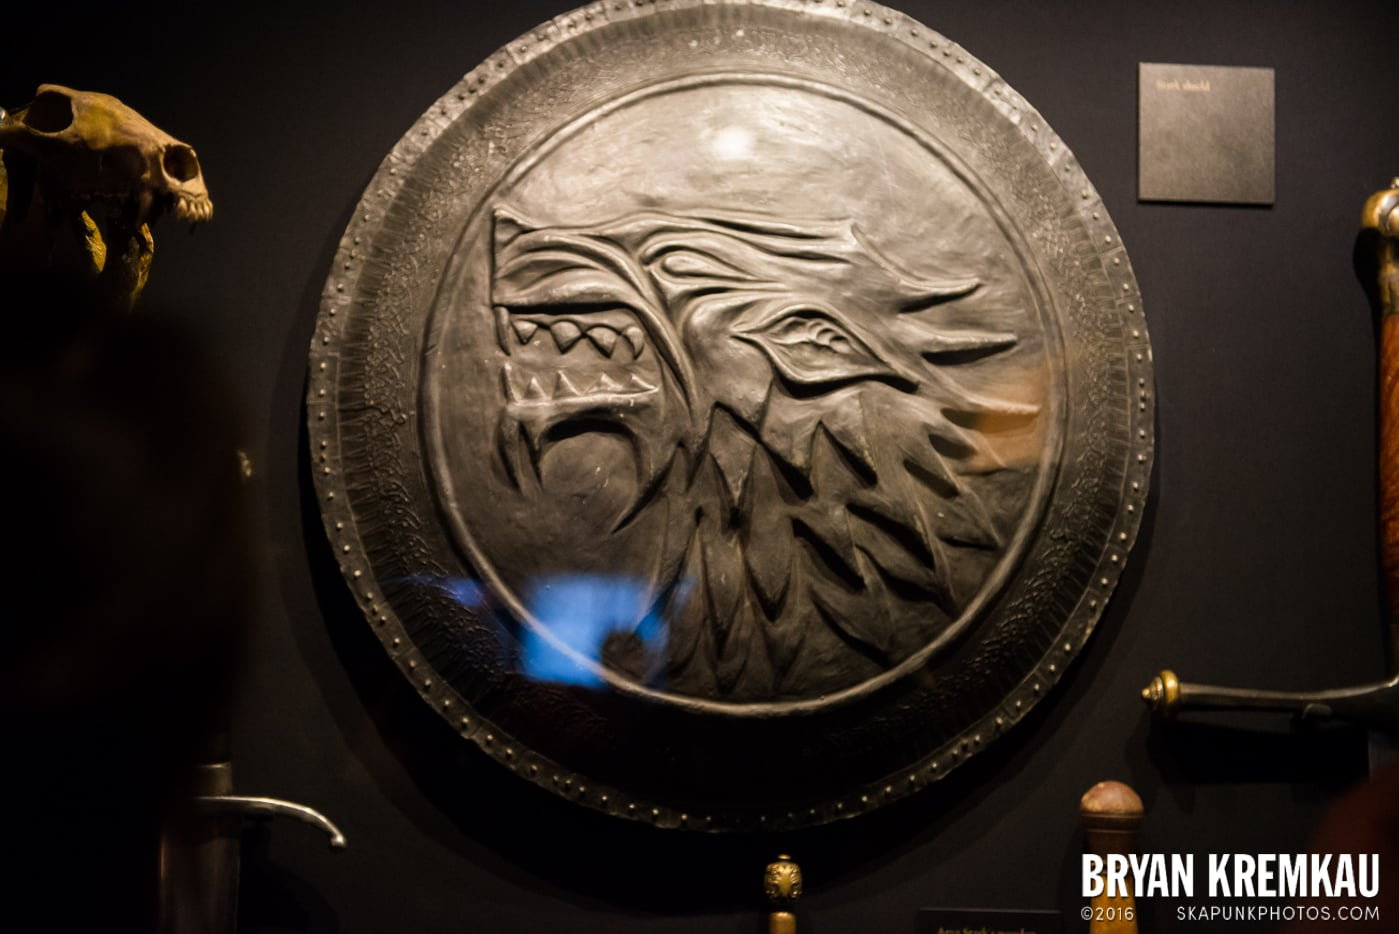 Game Of Thrones Exhibition @ New York, NY - 3.29.13 (48)